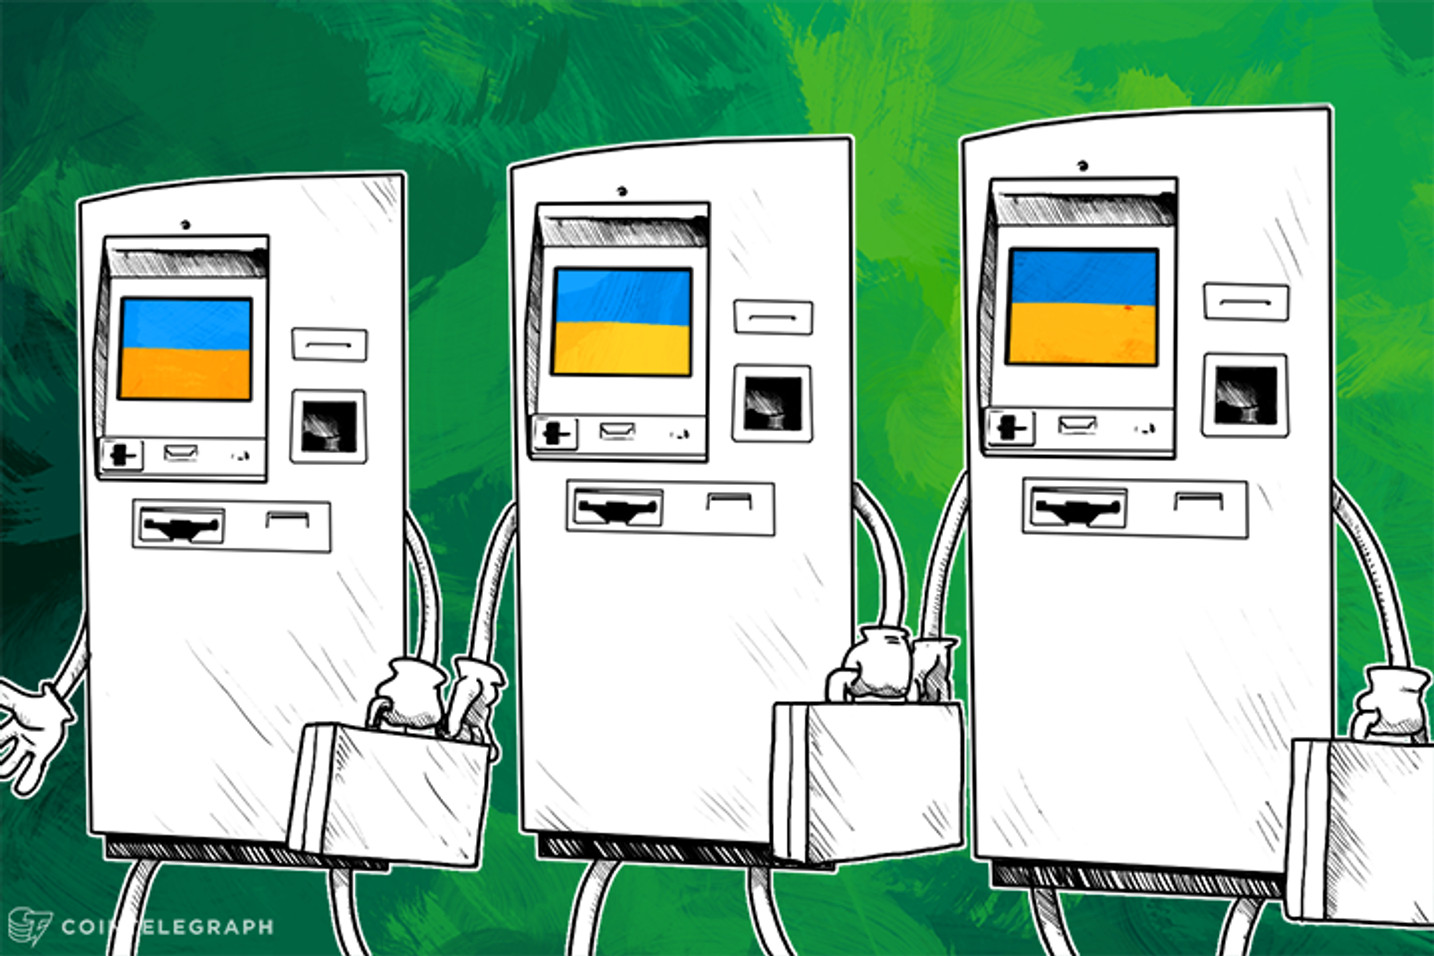 Bitcoin's New ATM Capital of the World Moves Near Military Hot Zone